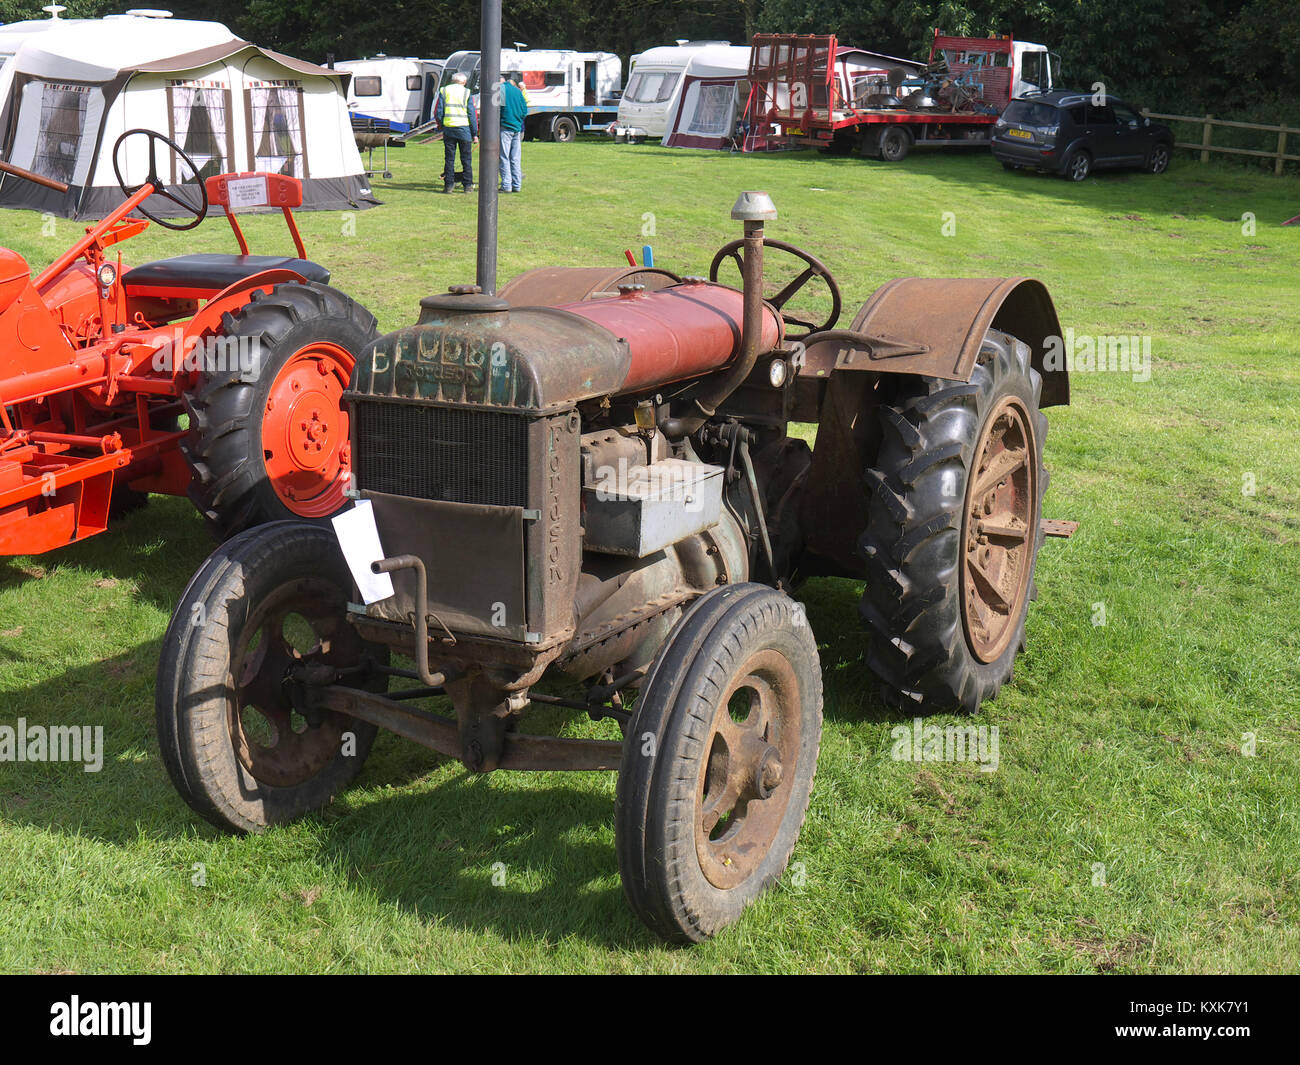 Vintage fordson tractor in need of tlc at Normanby Hall - Stock Image